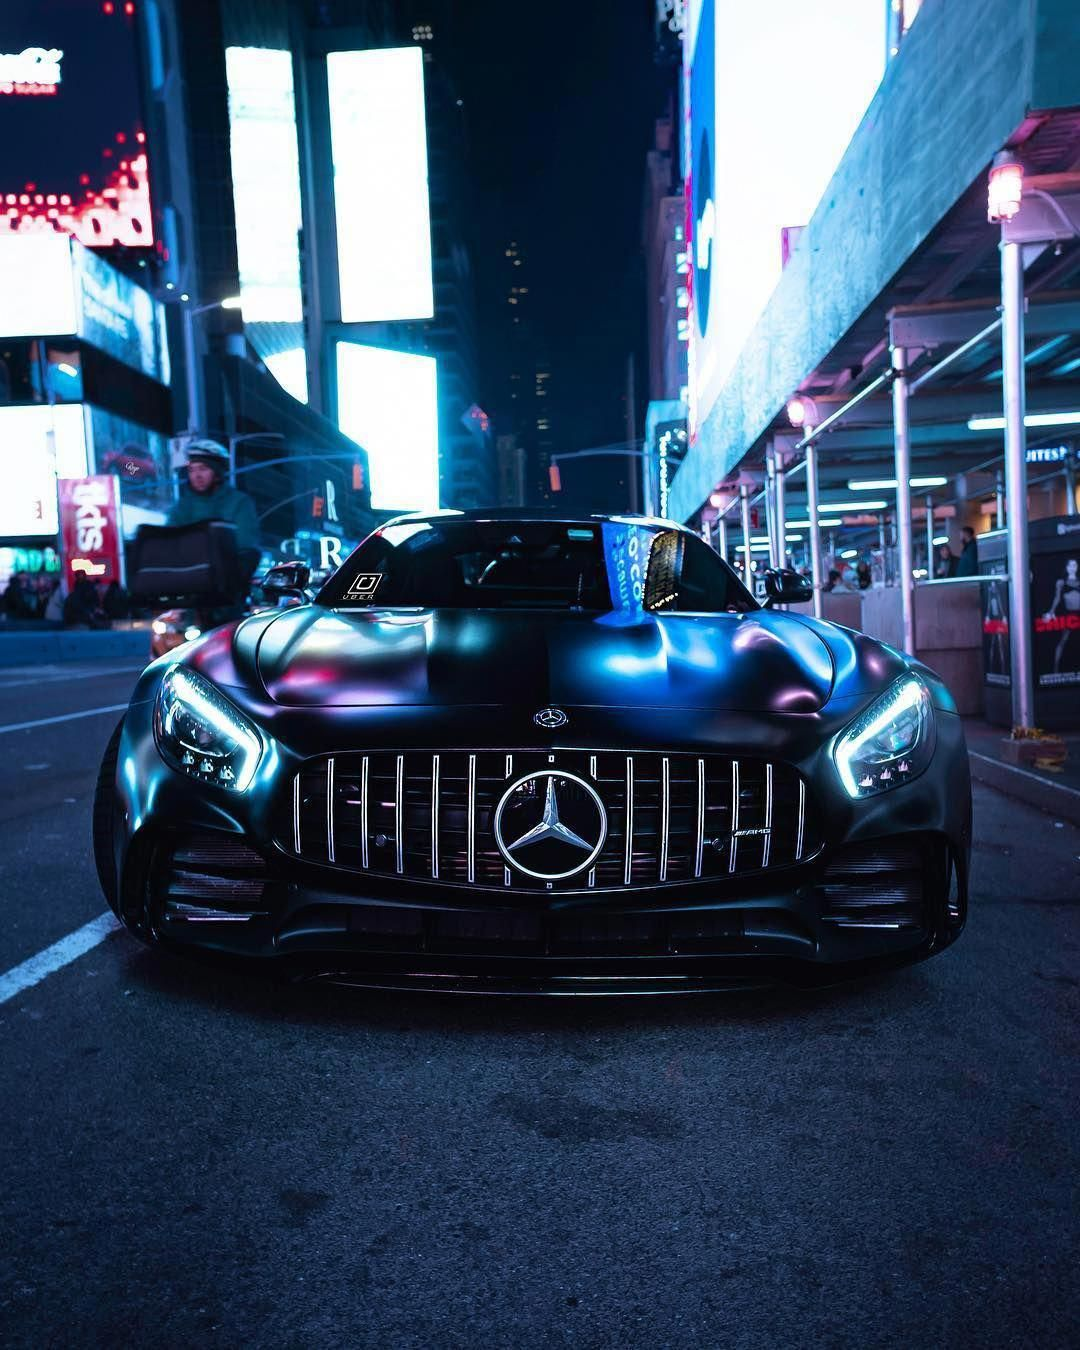 It Doesn T Get Better Than This Mercedes My Ultimate Supercar Ride Dreamcars Supercar Luxury Car Coolcars Ex Mercedes Benz Amg Super Cars Mercedes Benz